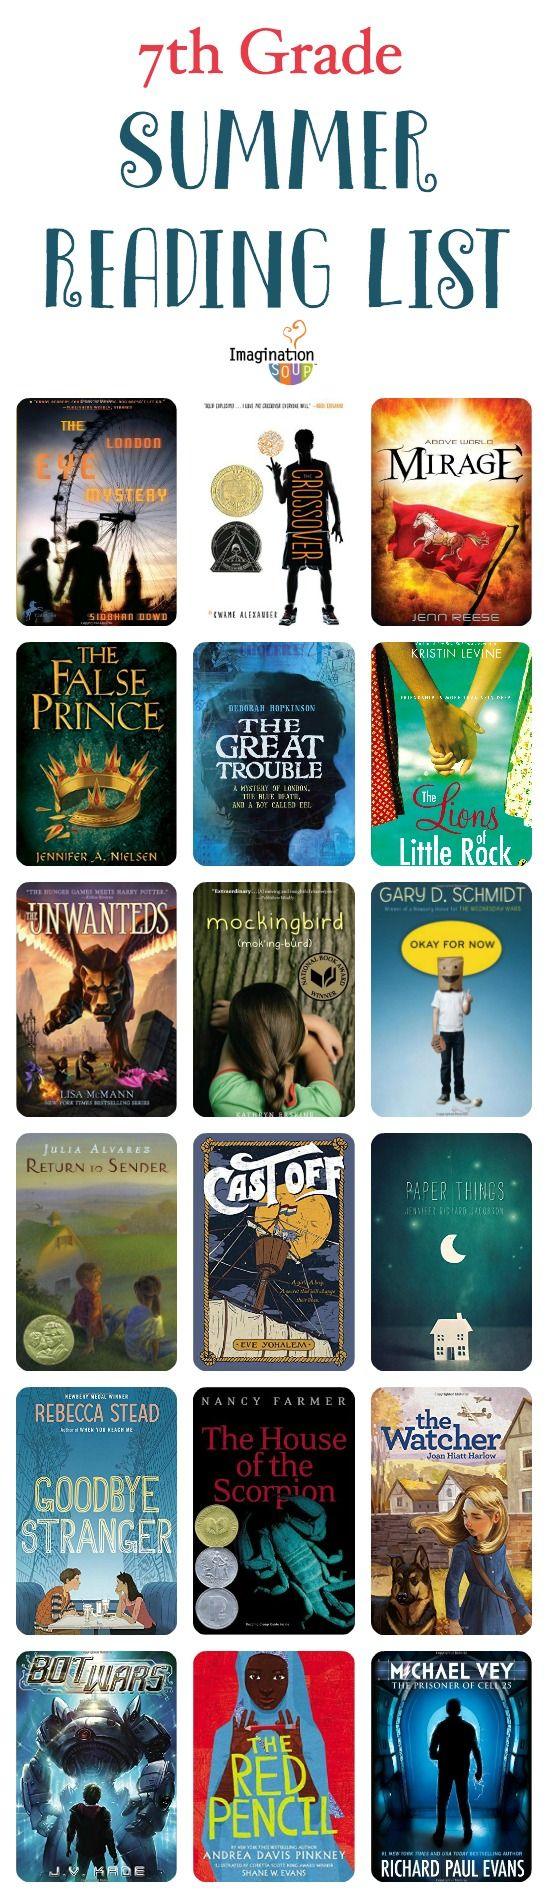 7th grade summer reading list